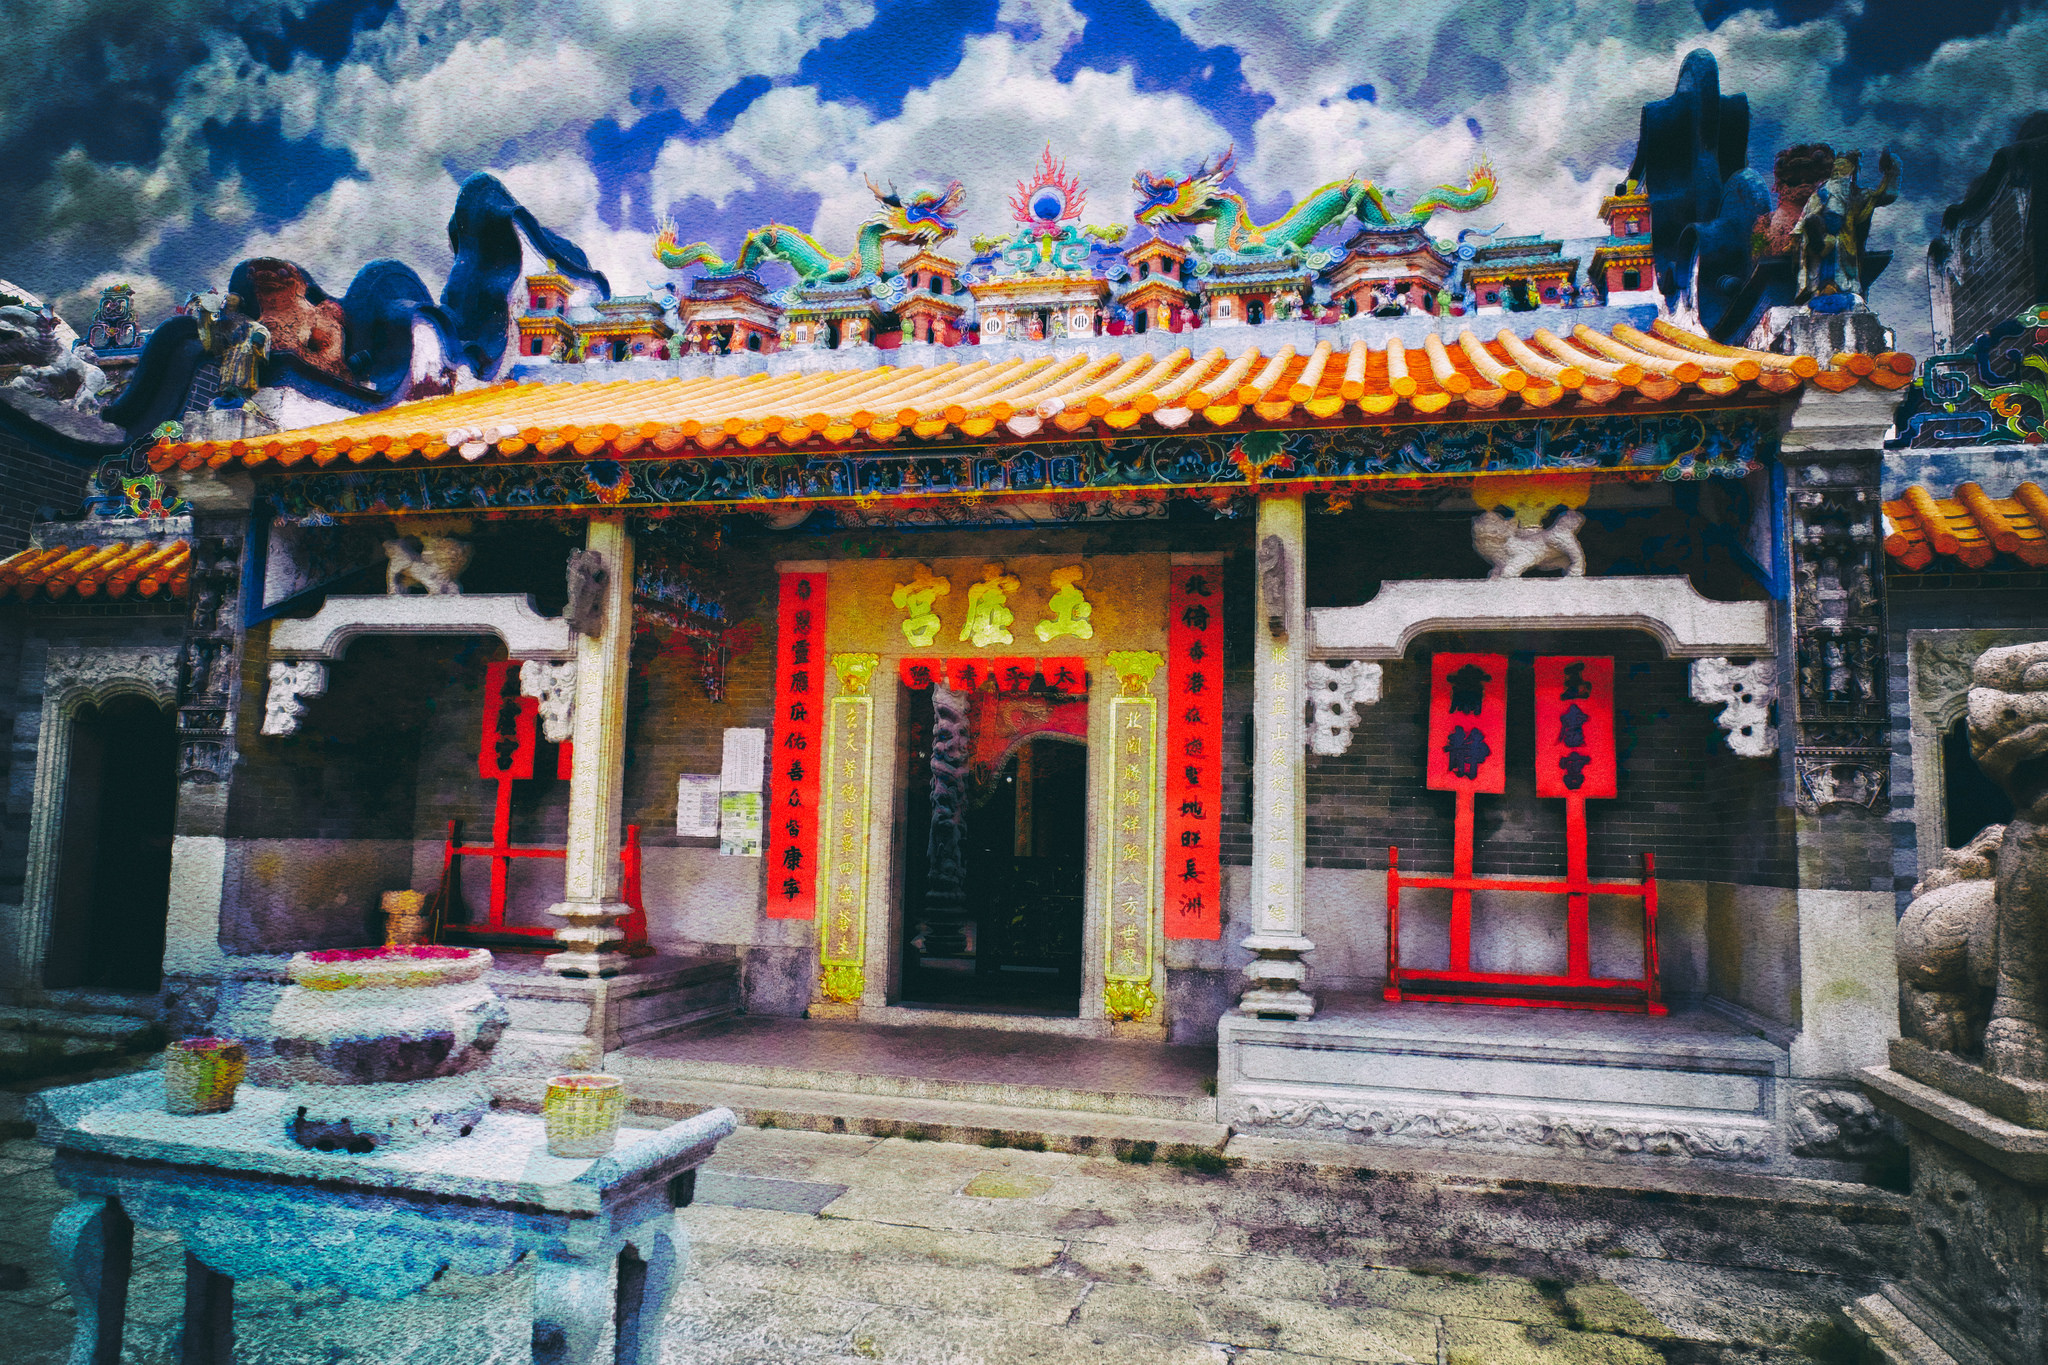 The Pak Tai Temple on Cheung Chau. Image processed by William Banzai7.